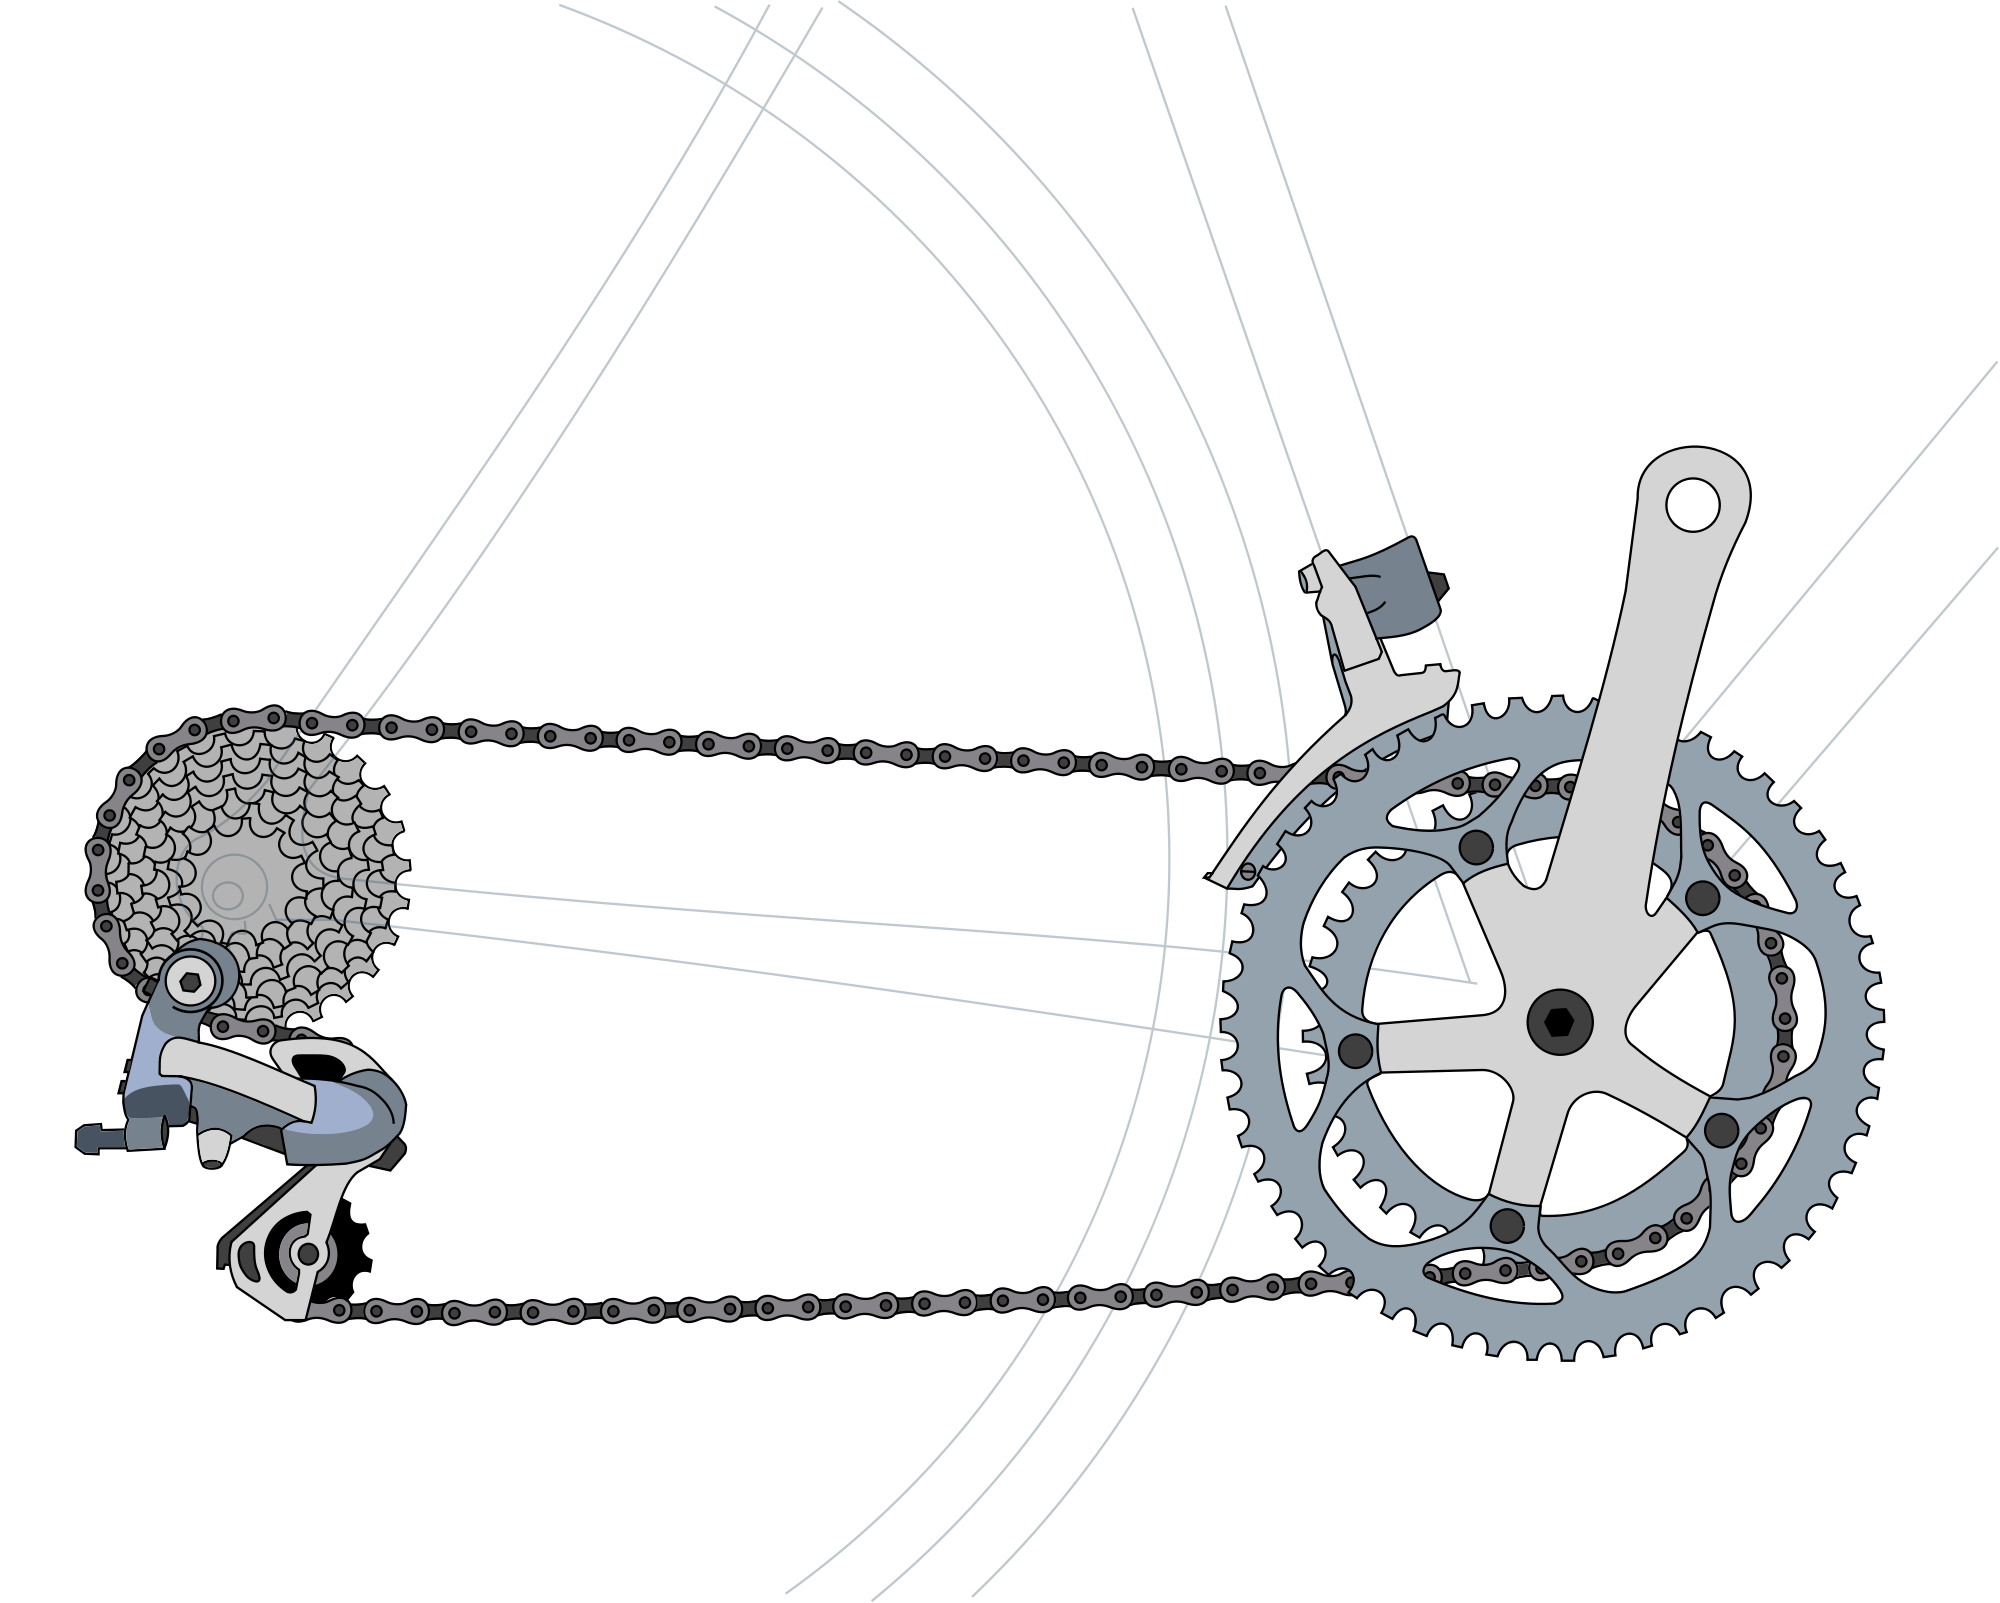 Drawing gear train. Derailleur gears wikipedia historyedit